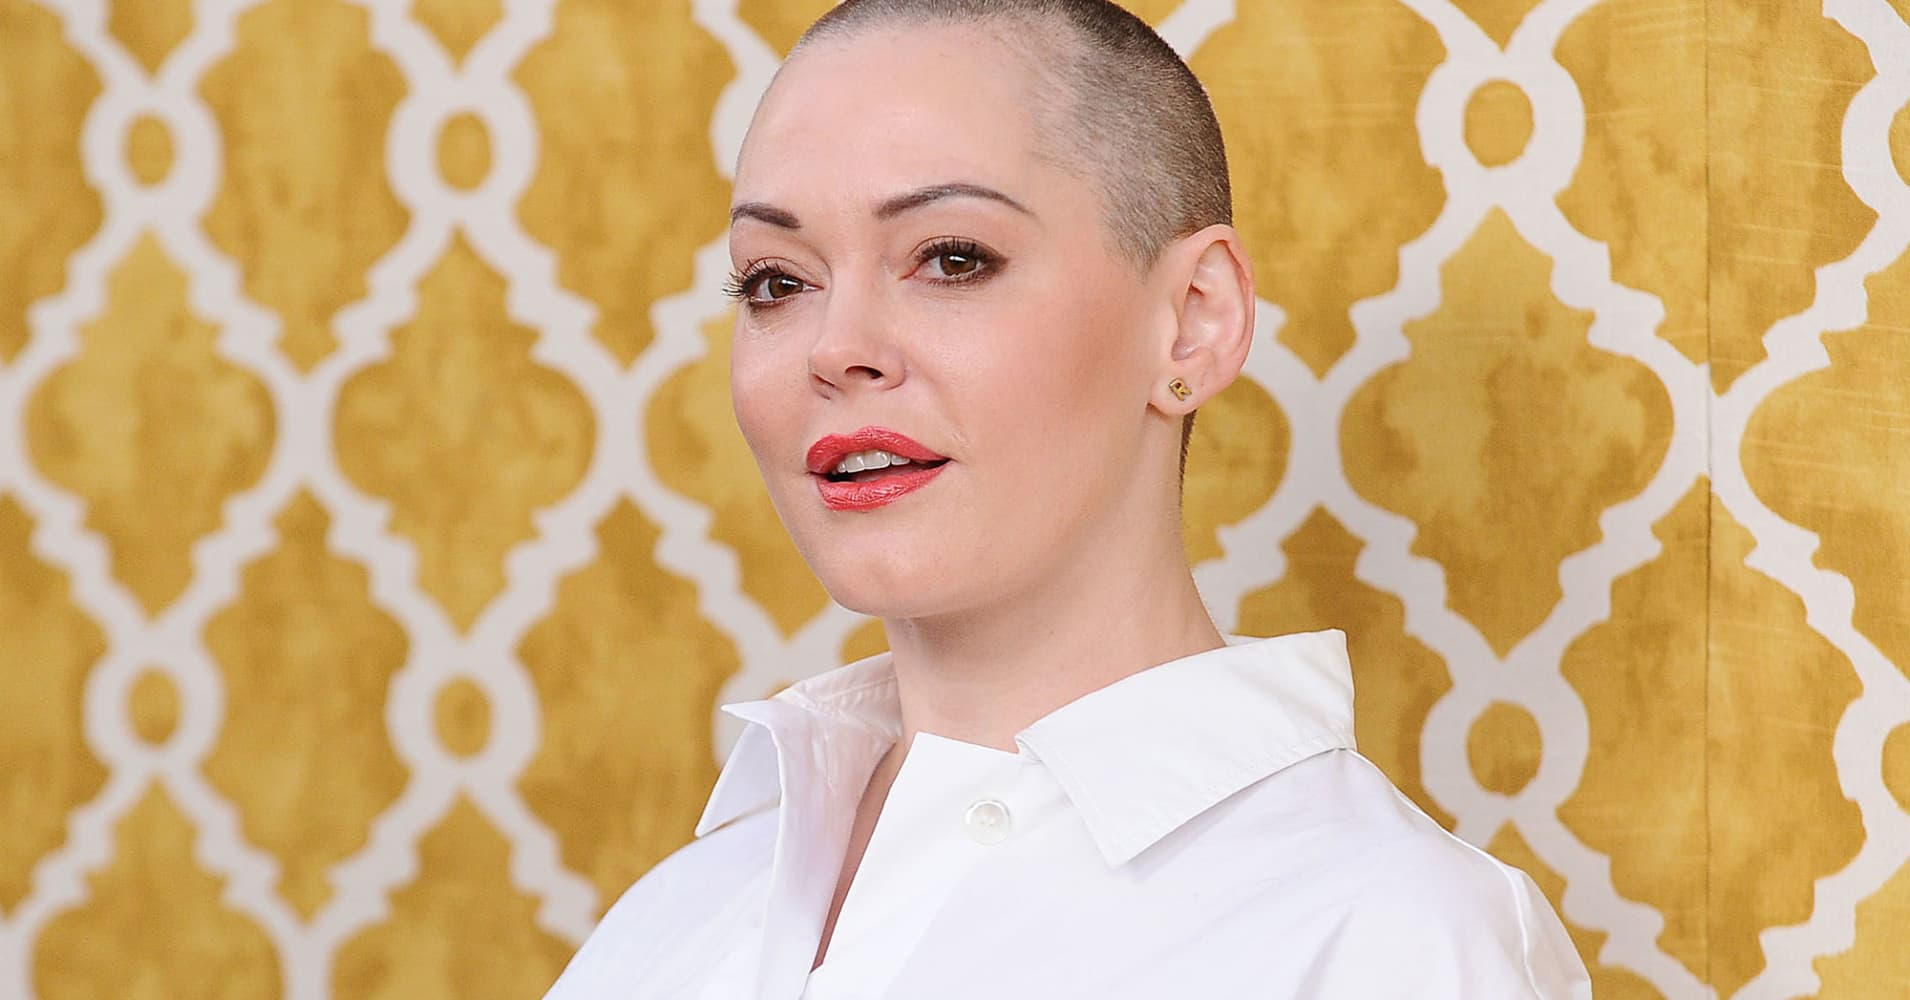 Some women call for a boycott of Twitter after actress Rose McGowan is partially suspended